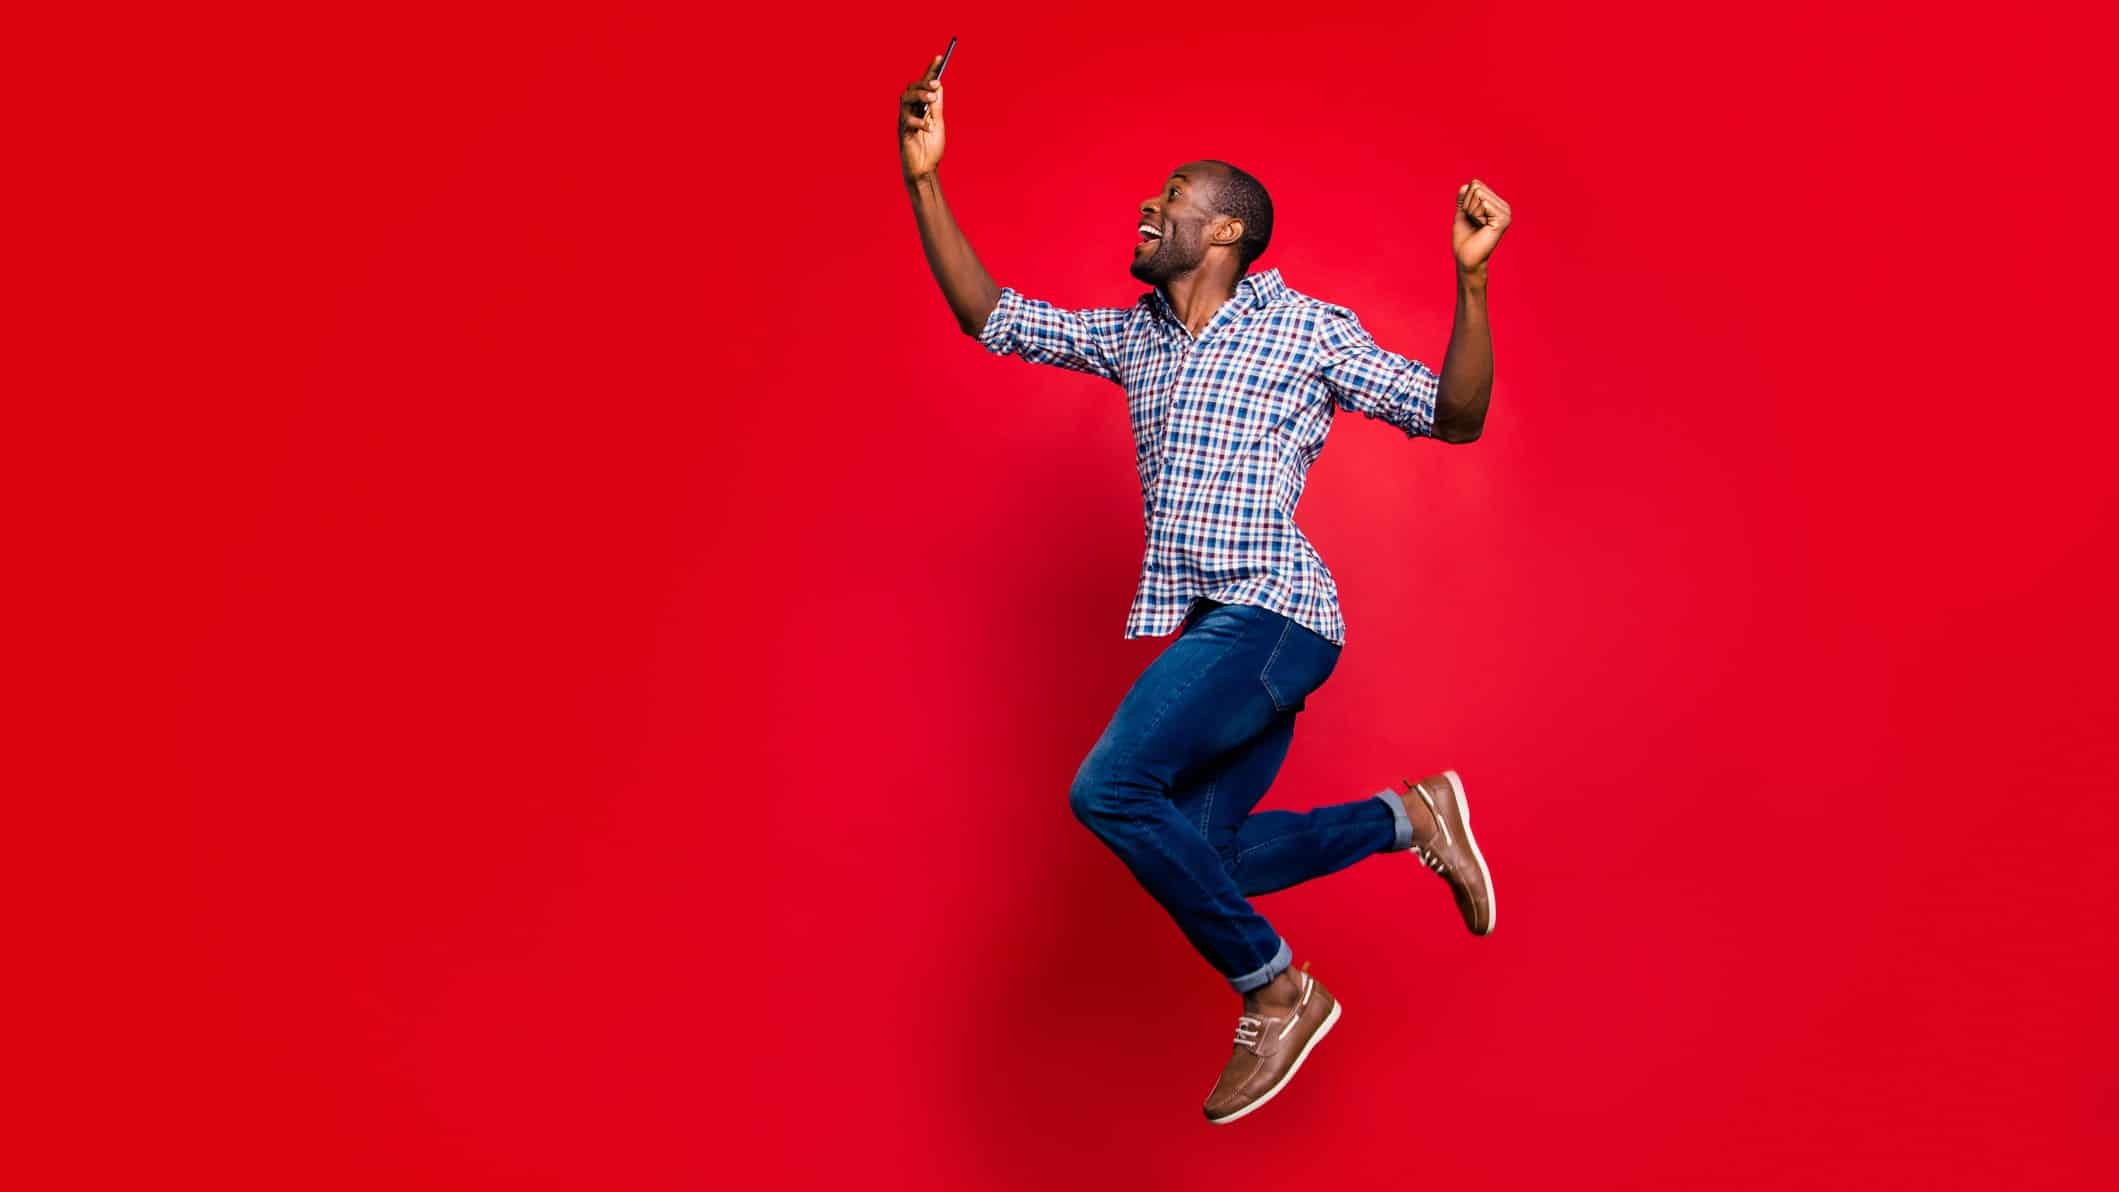 rising ASX share price represented by man jumping in the air for joy looking at mobile phone